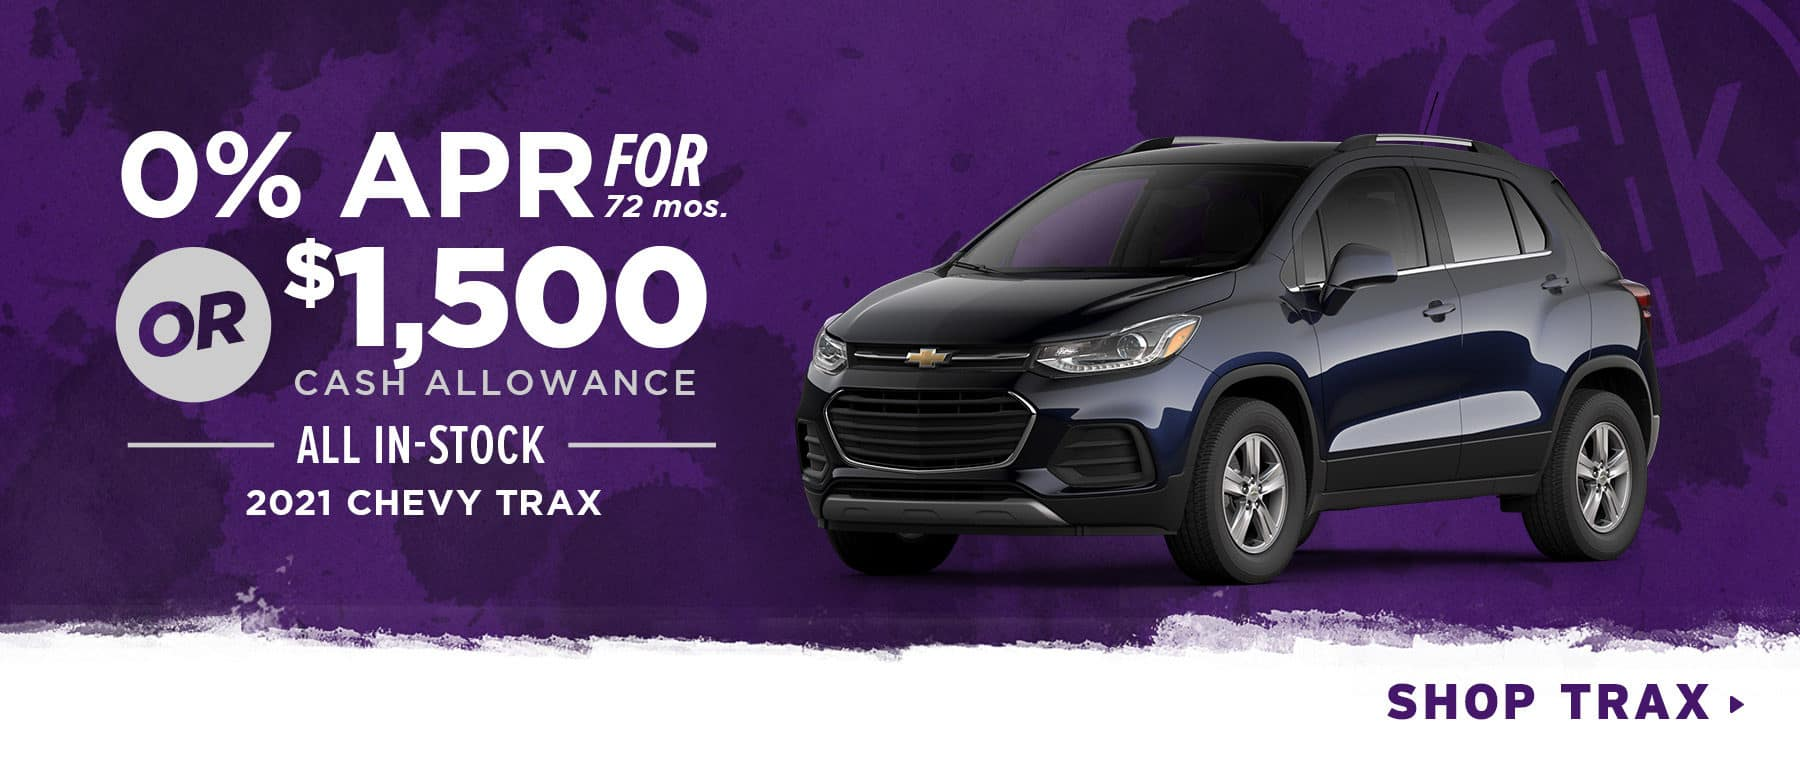 0% APR for 72 mos. OR $1,500 Cash Allowance All In-Stock 2021 Chevy Trax